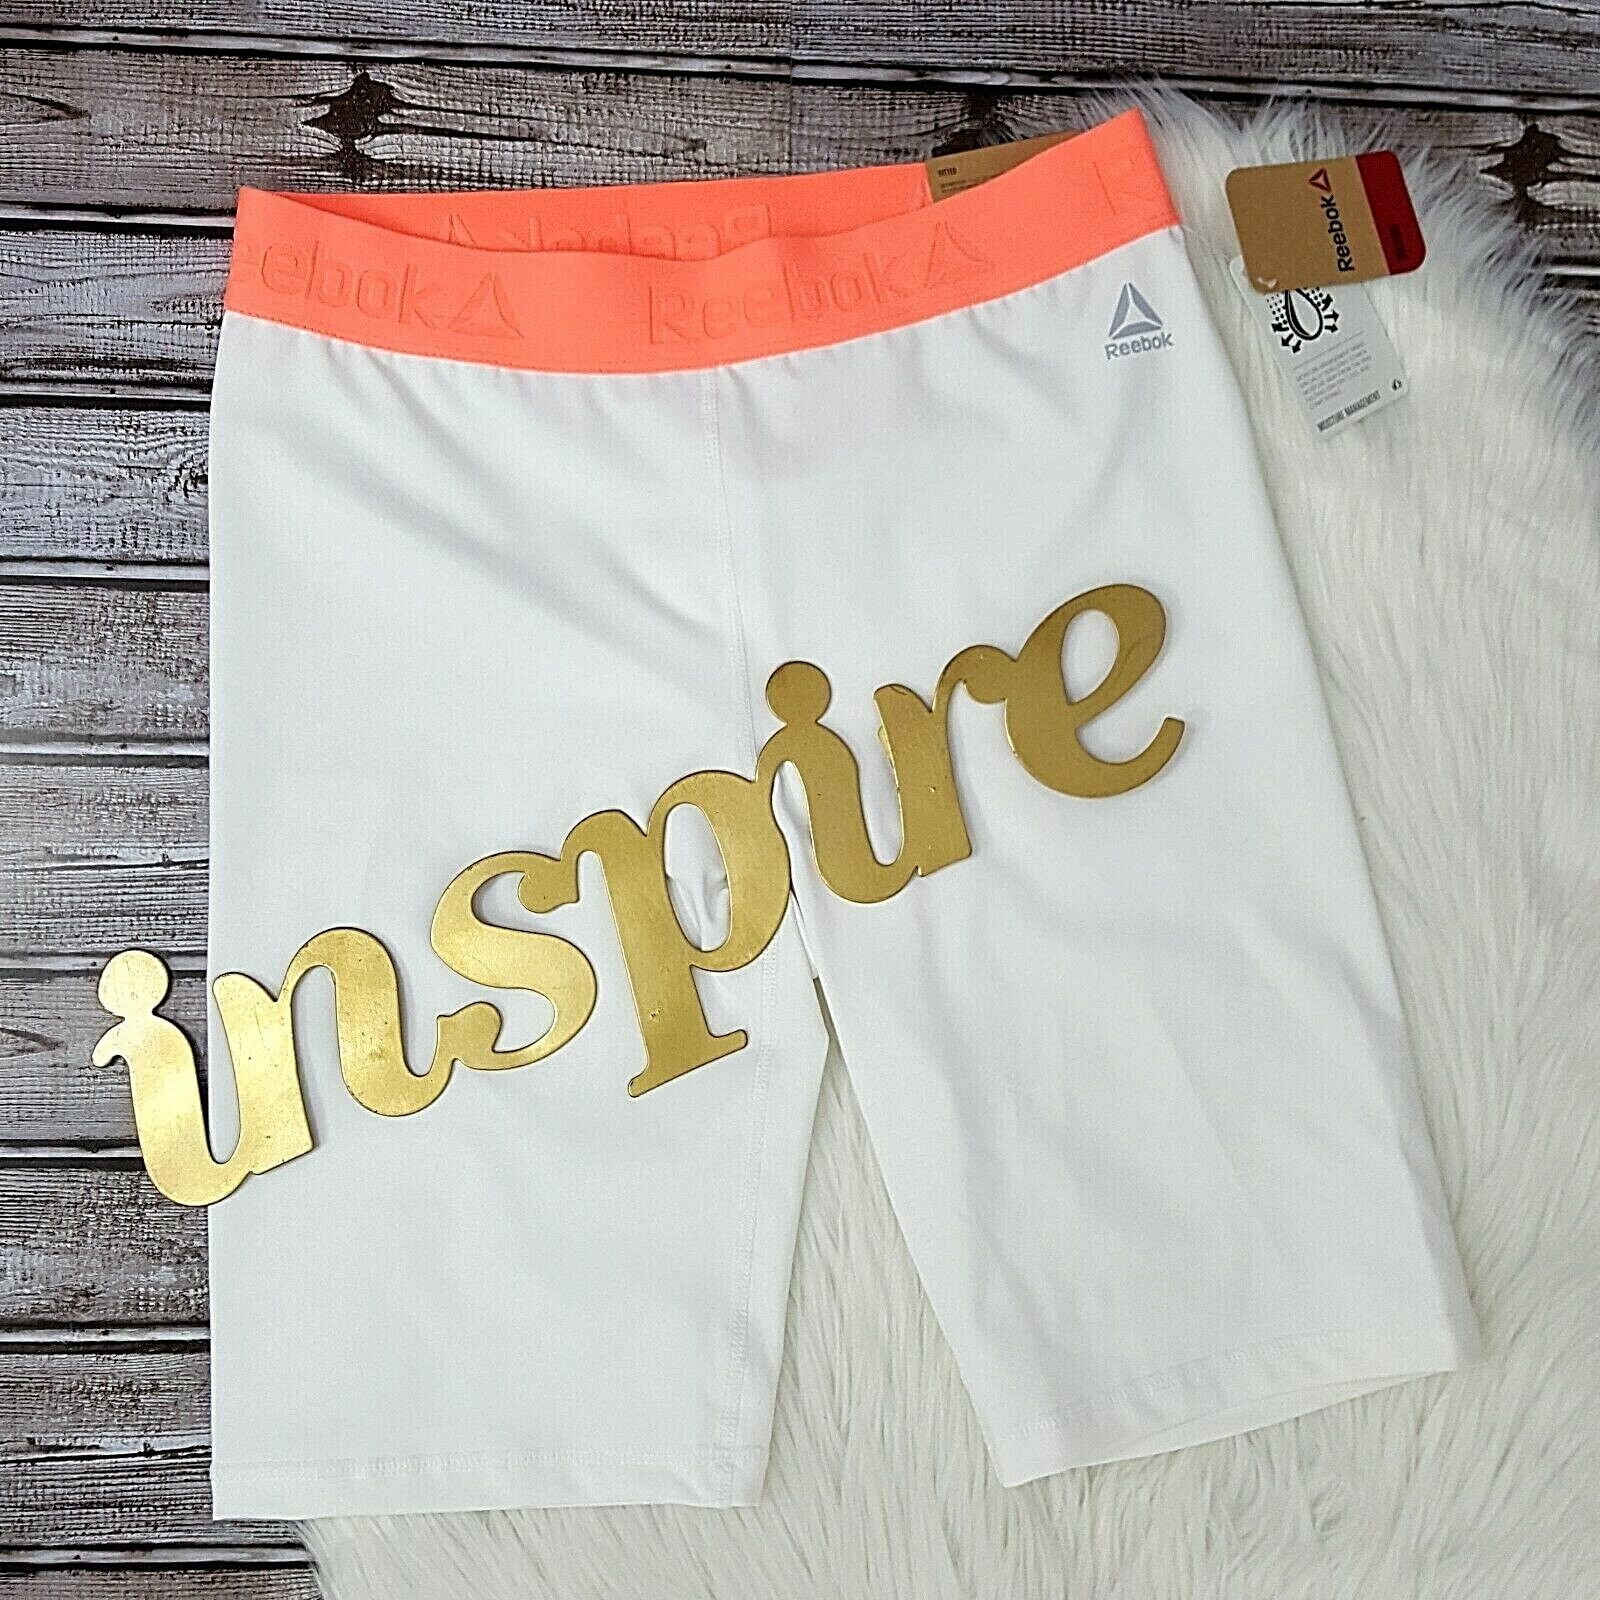 Reebok Womens Compression Shorts Fitted Max Work Out Support Stretch Orange Sz M